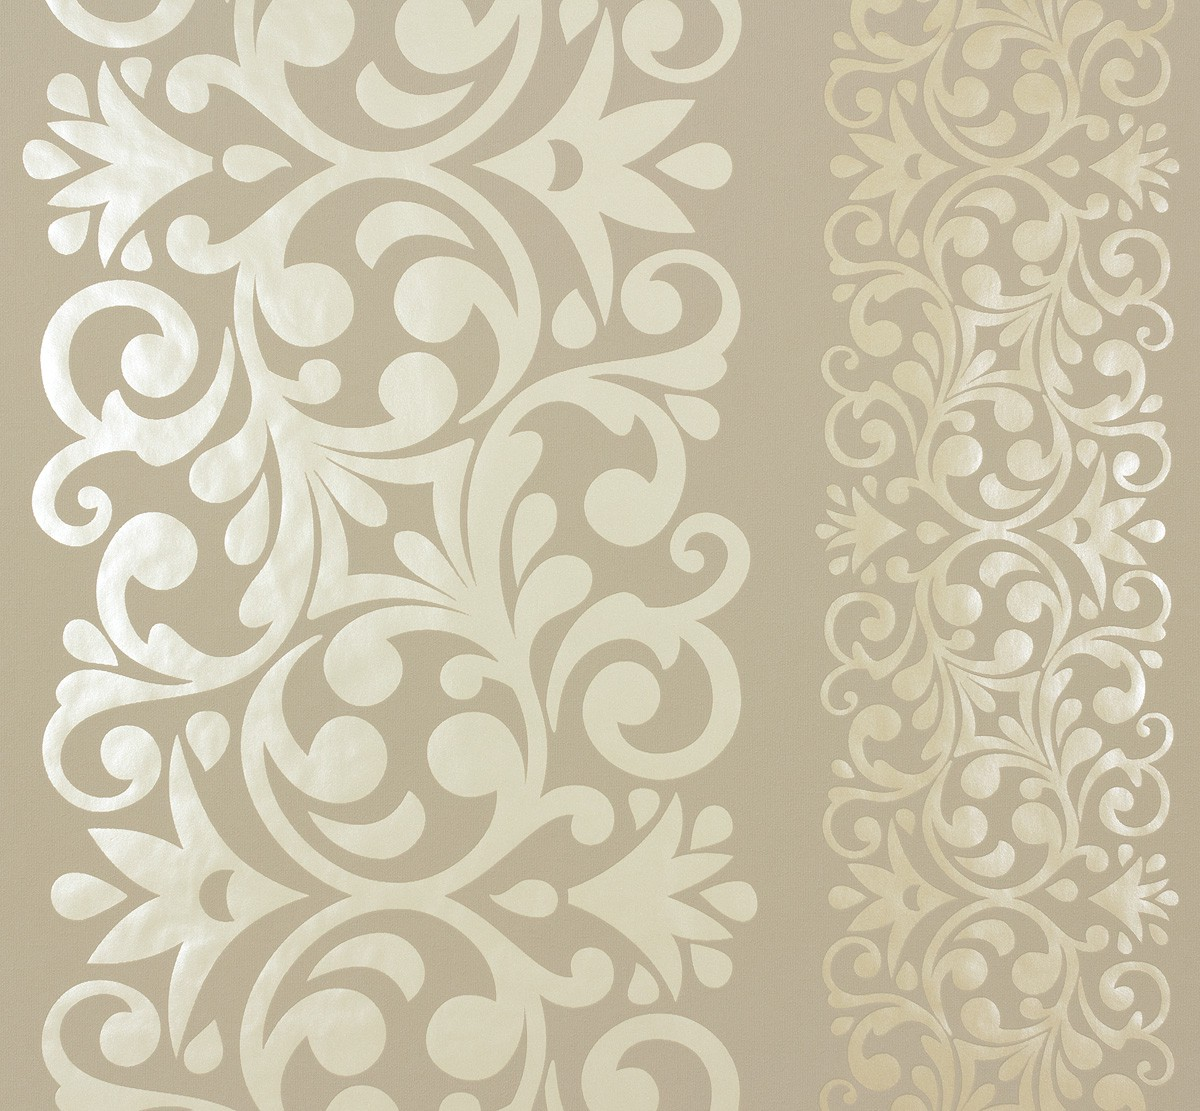 Marburg Tapeten Ornamental Home : Marburg Vliestapete Ornamental Home Tapete 55237 Floral Ranken beige